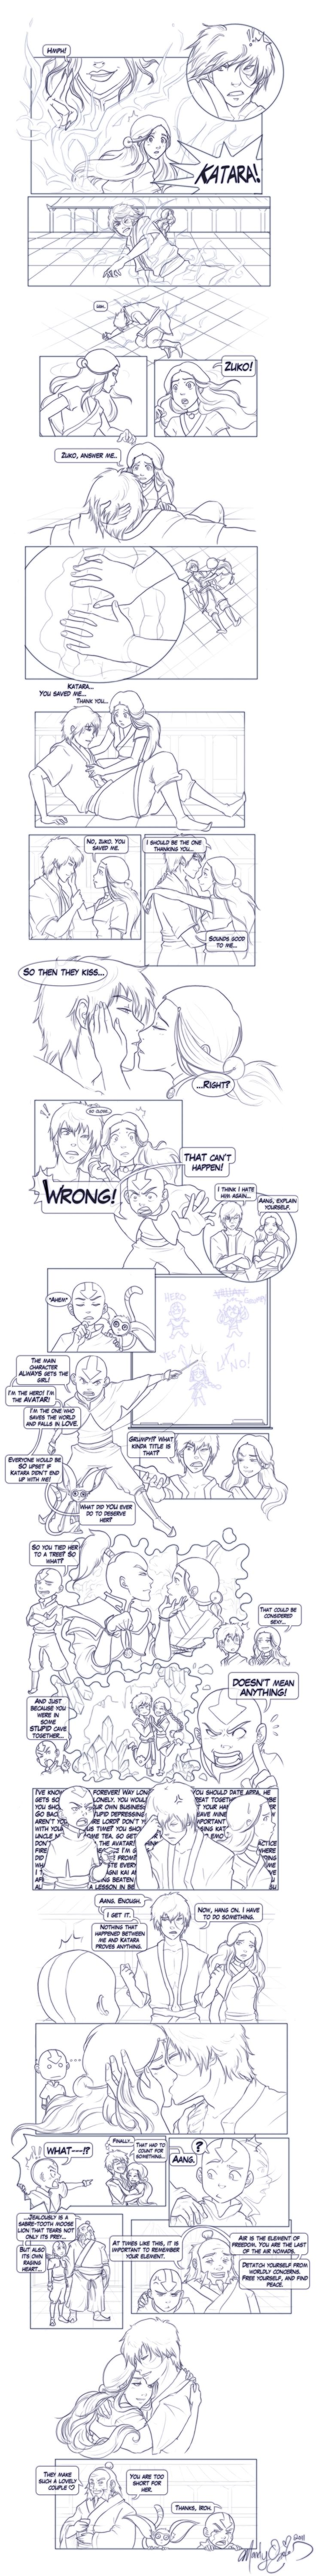 """This is hilarious! The End - Comic by Mandy-Mo.deviantart.com on @deviantART """"You should date Appa."""""""